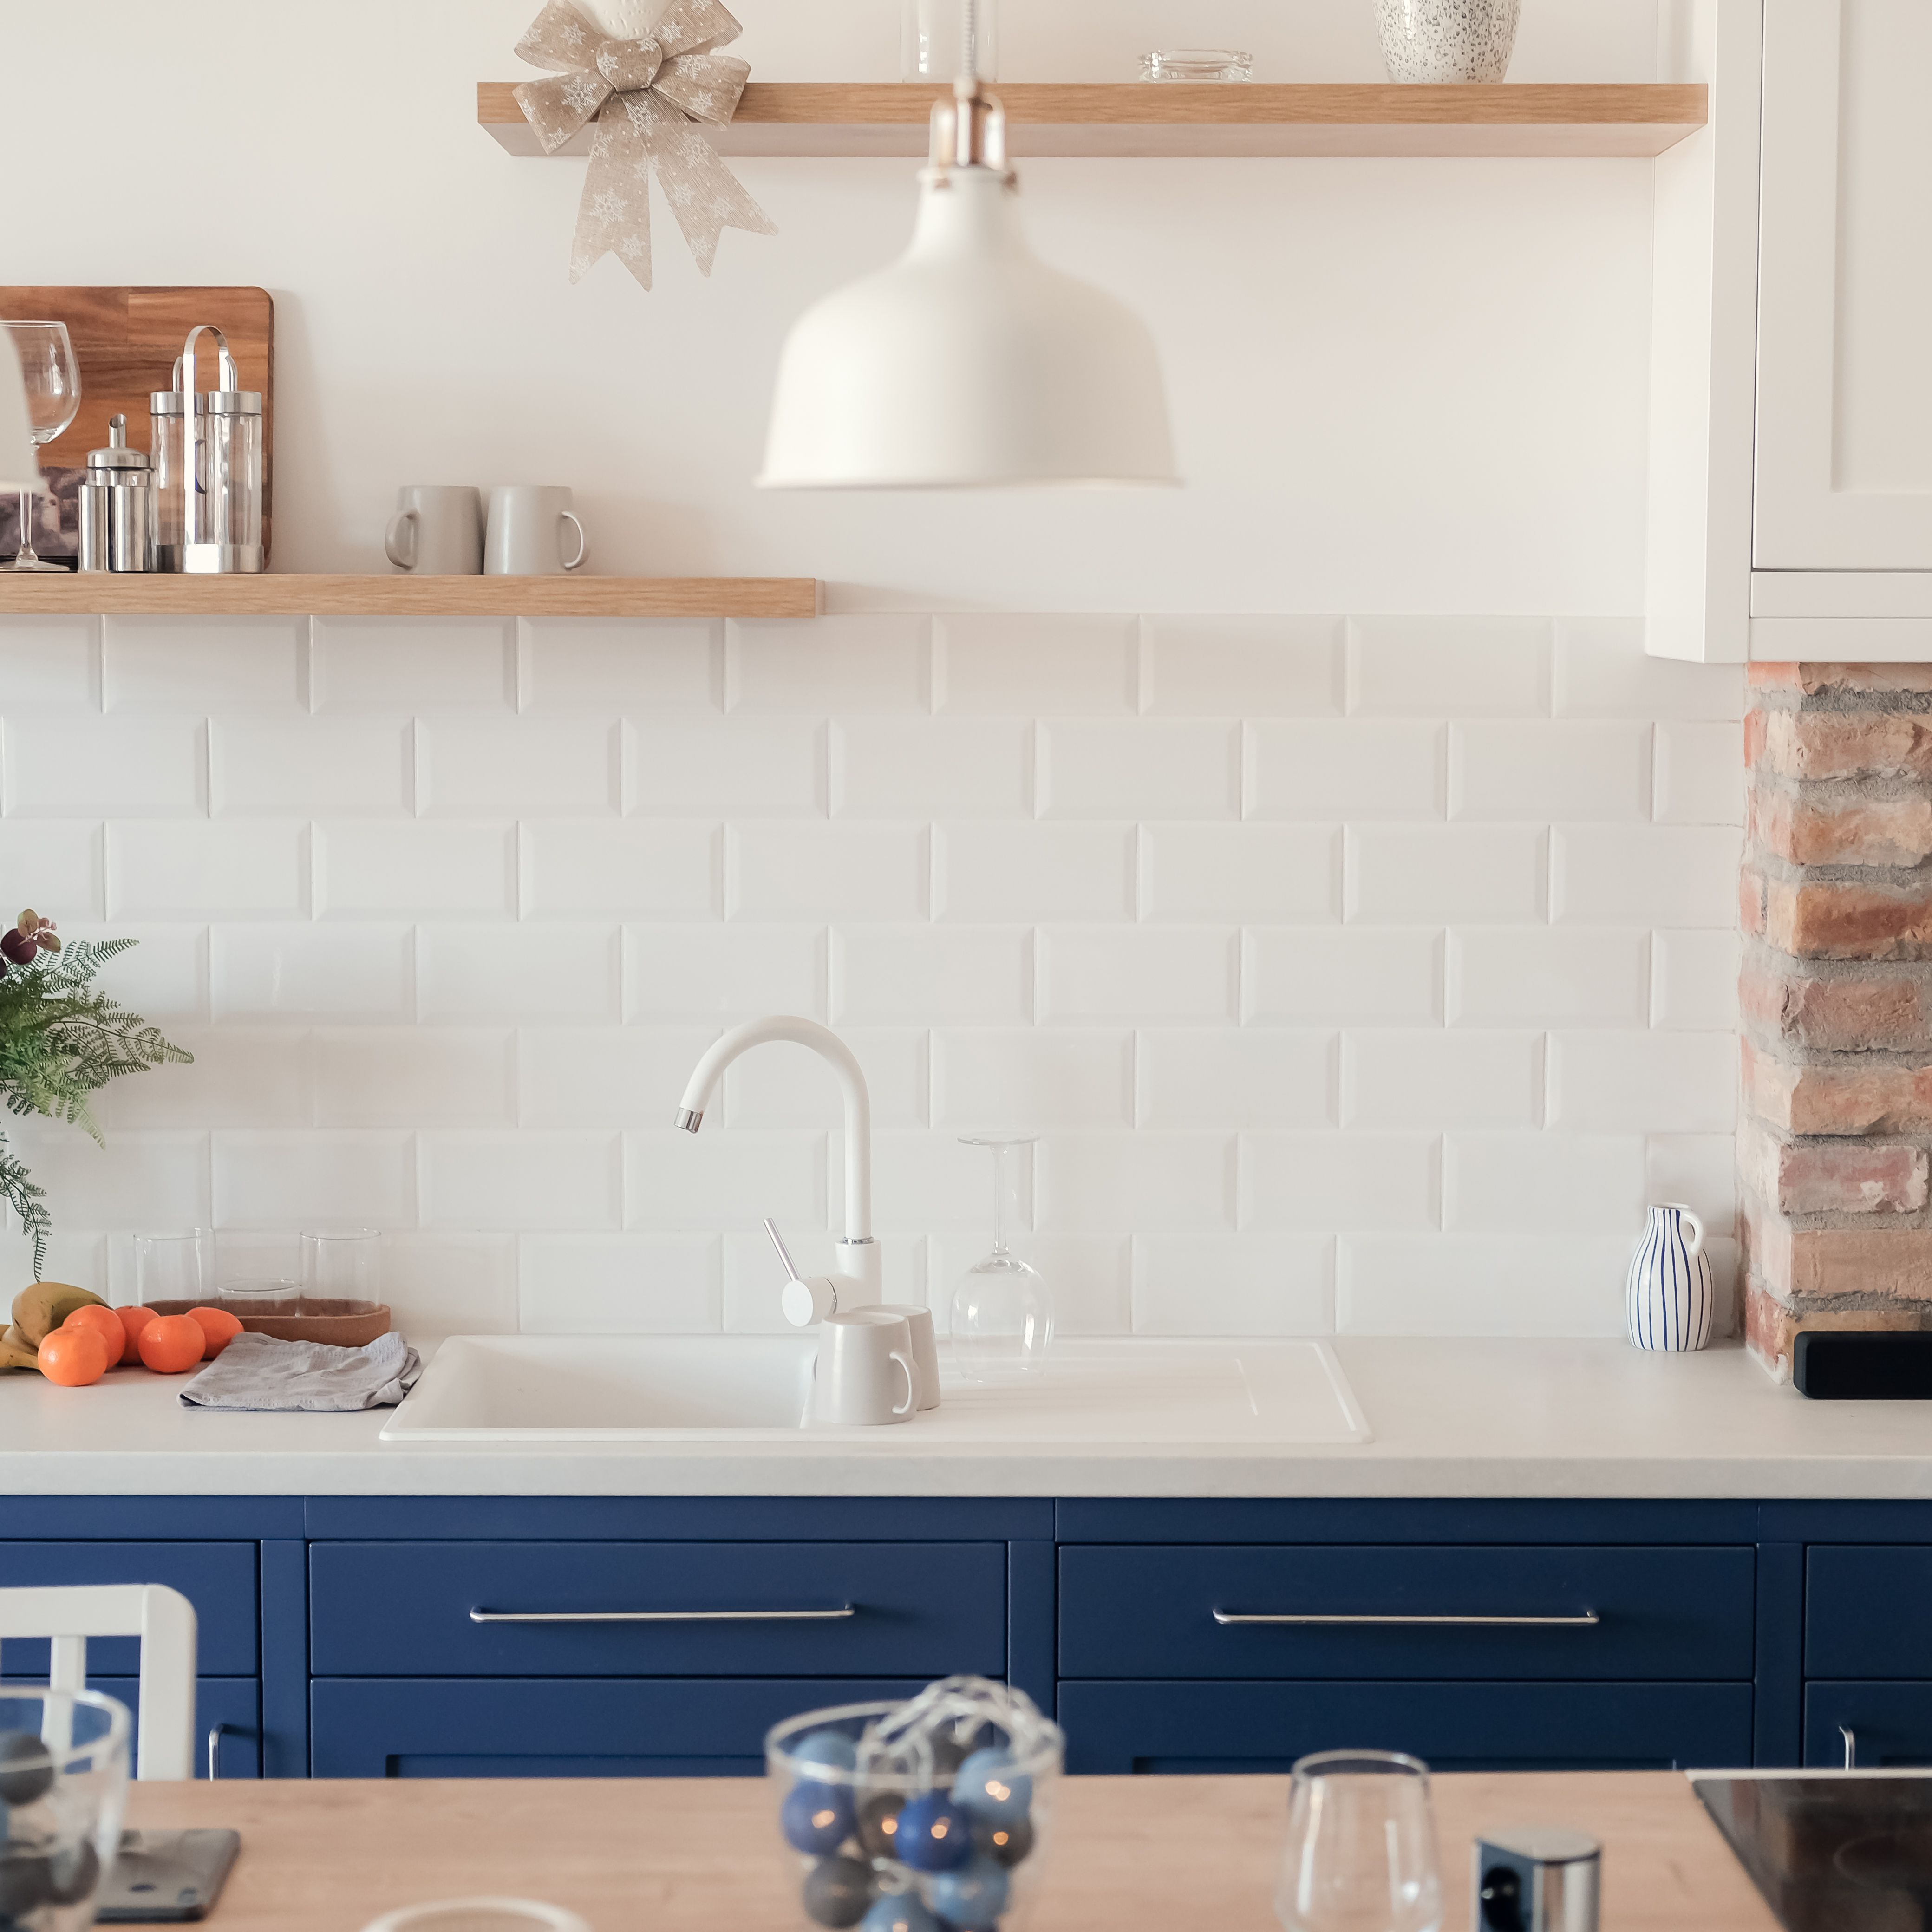 4 Ways To Save Money On A Kitchen Remodel